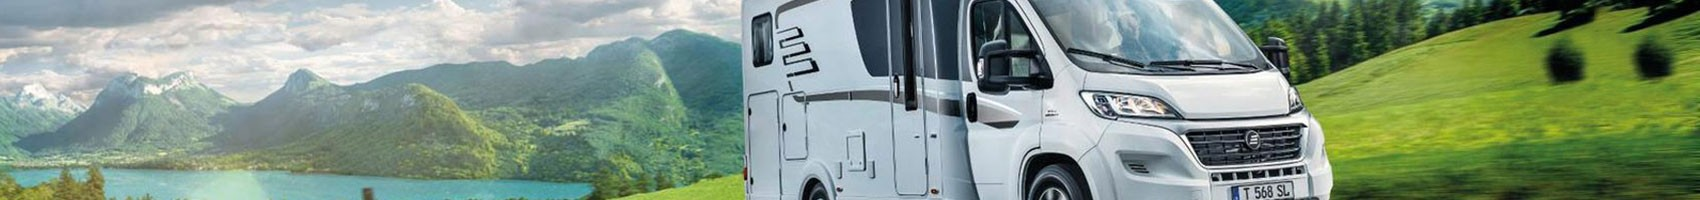 Top Tips for Holidaying in Your Motorhome